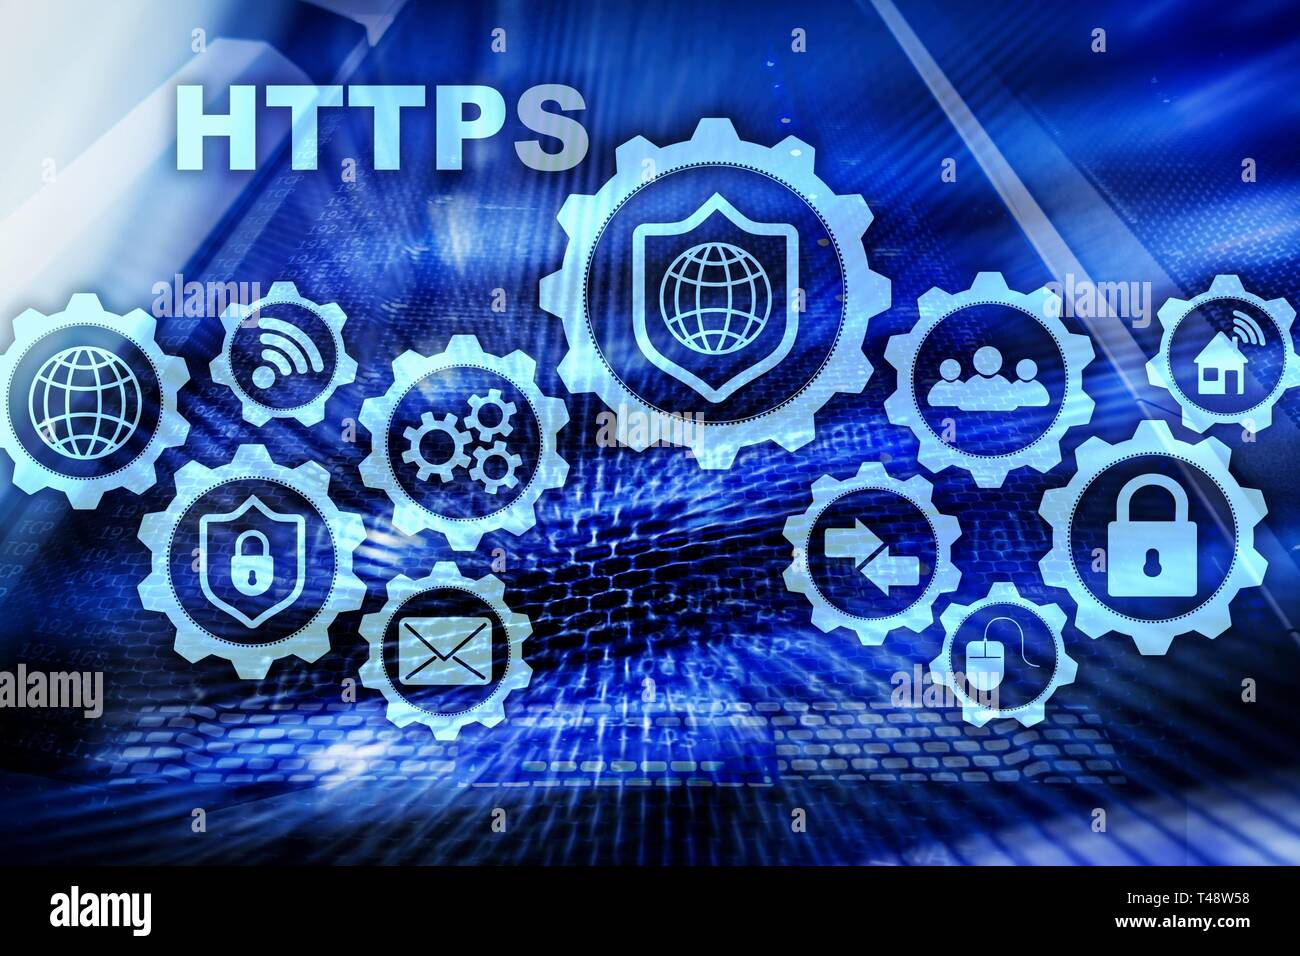 HTTPS. Hypertext Transport Protocol Secure. Technology Concept on Server Room Background. Virtual Icon for network security web service. - Stock Image